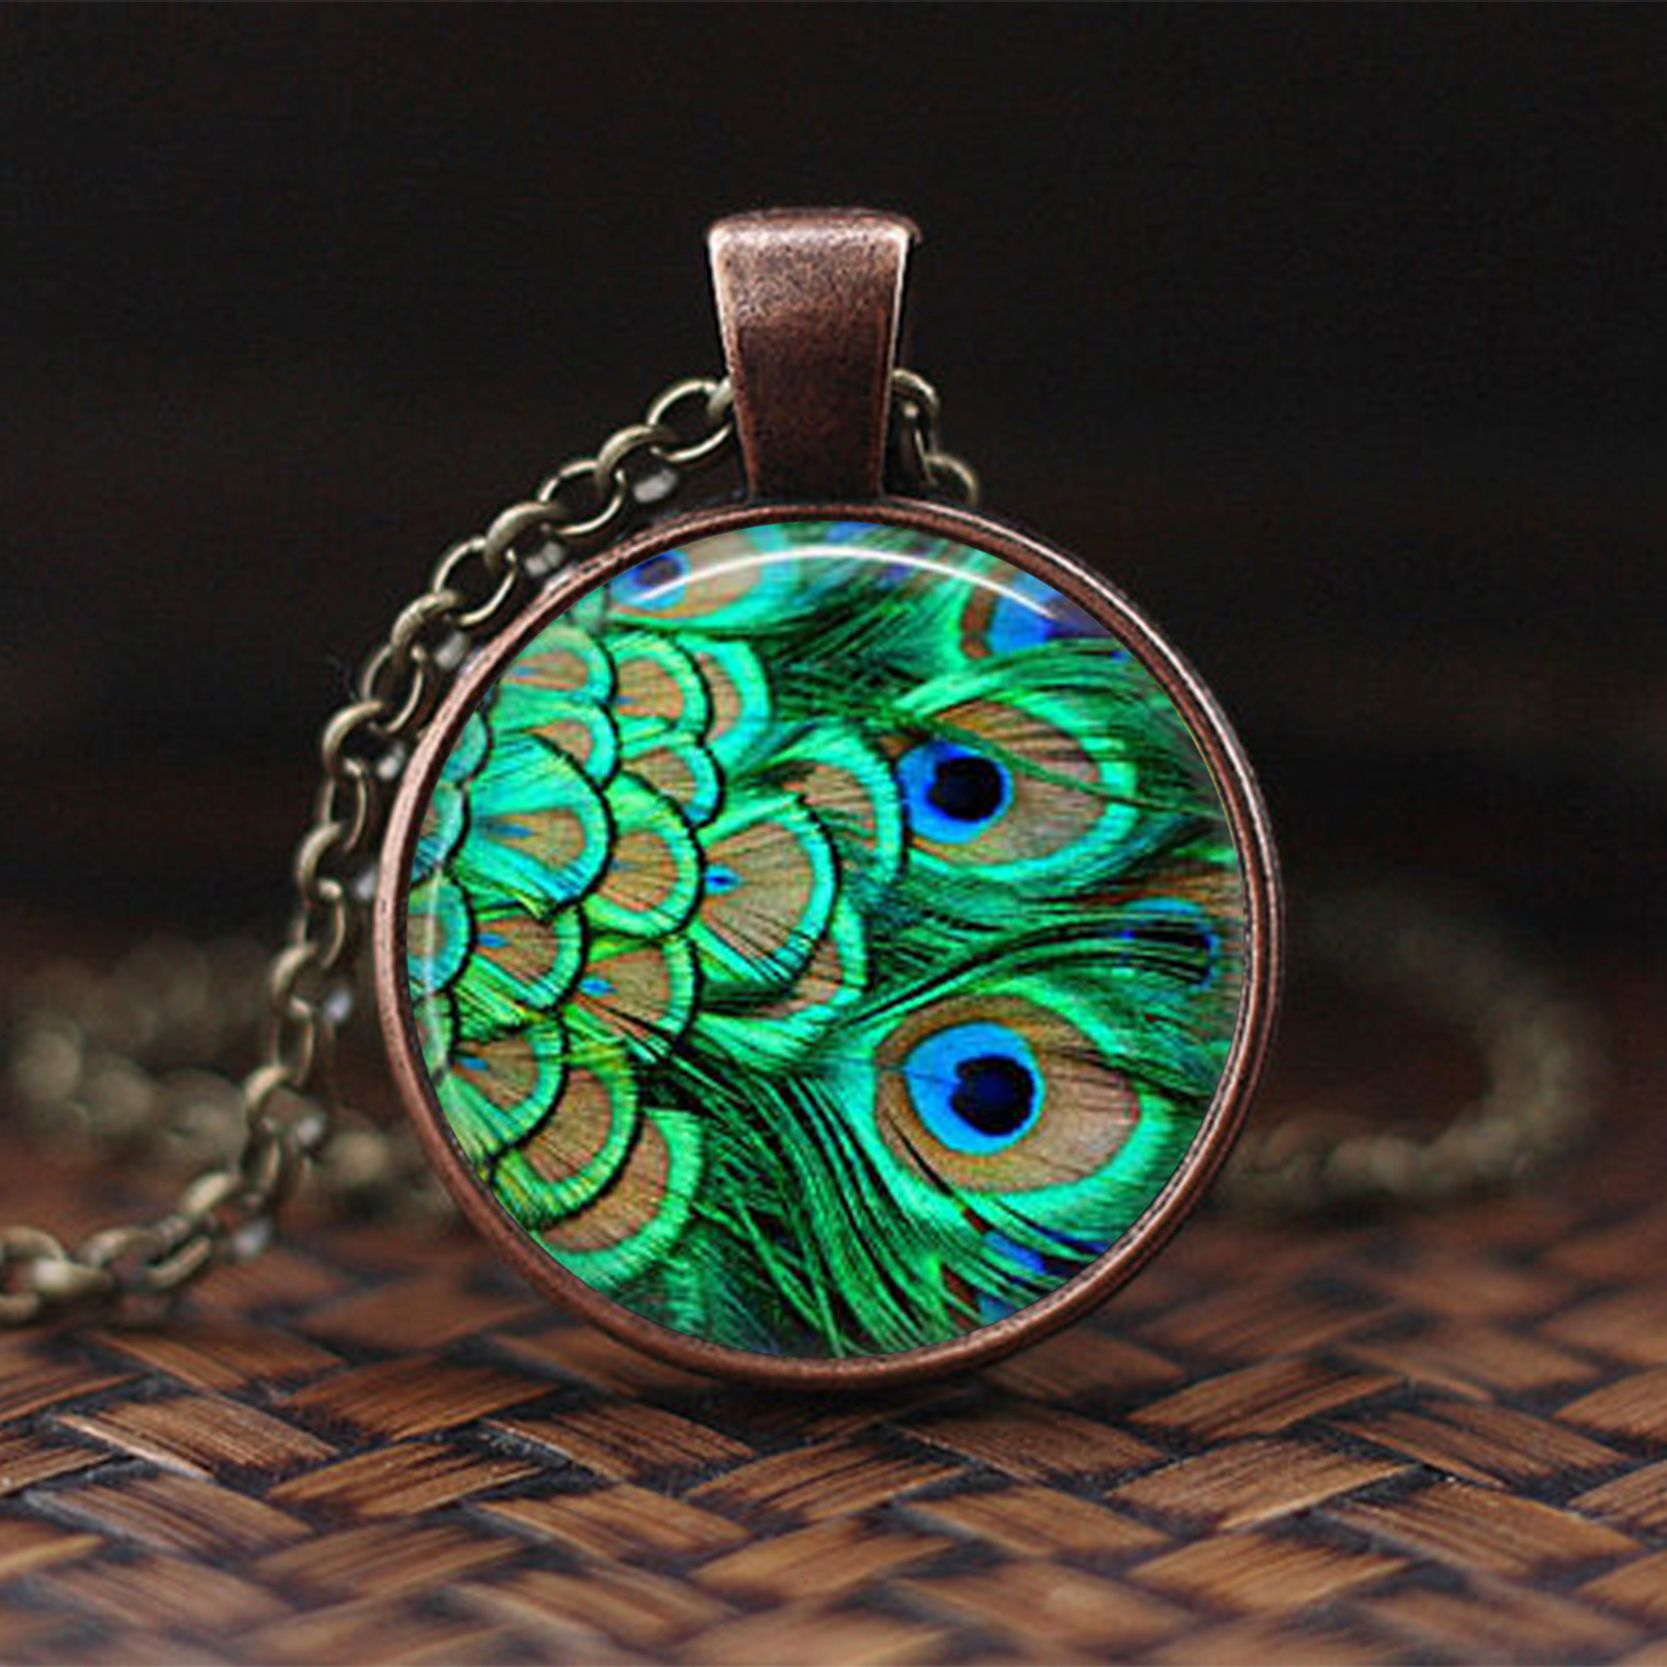 Mens necklace 2019 New Colorful Night Female Necklace Crystal Necklace Retro Jewelry Gift